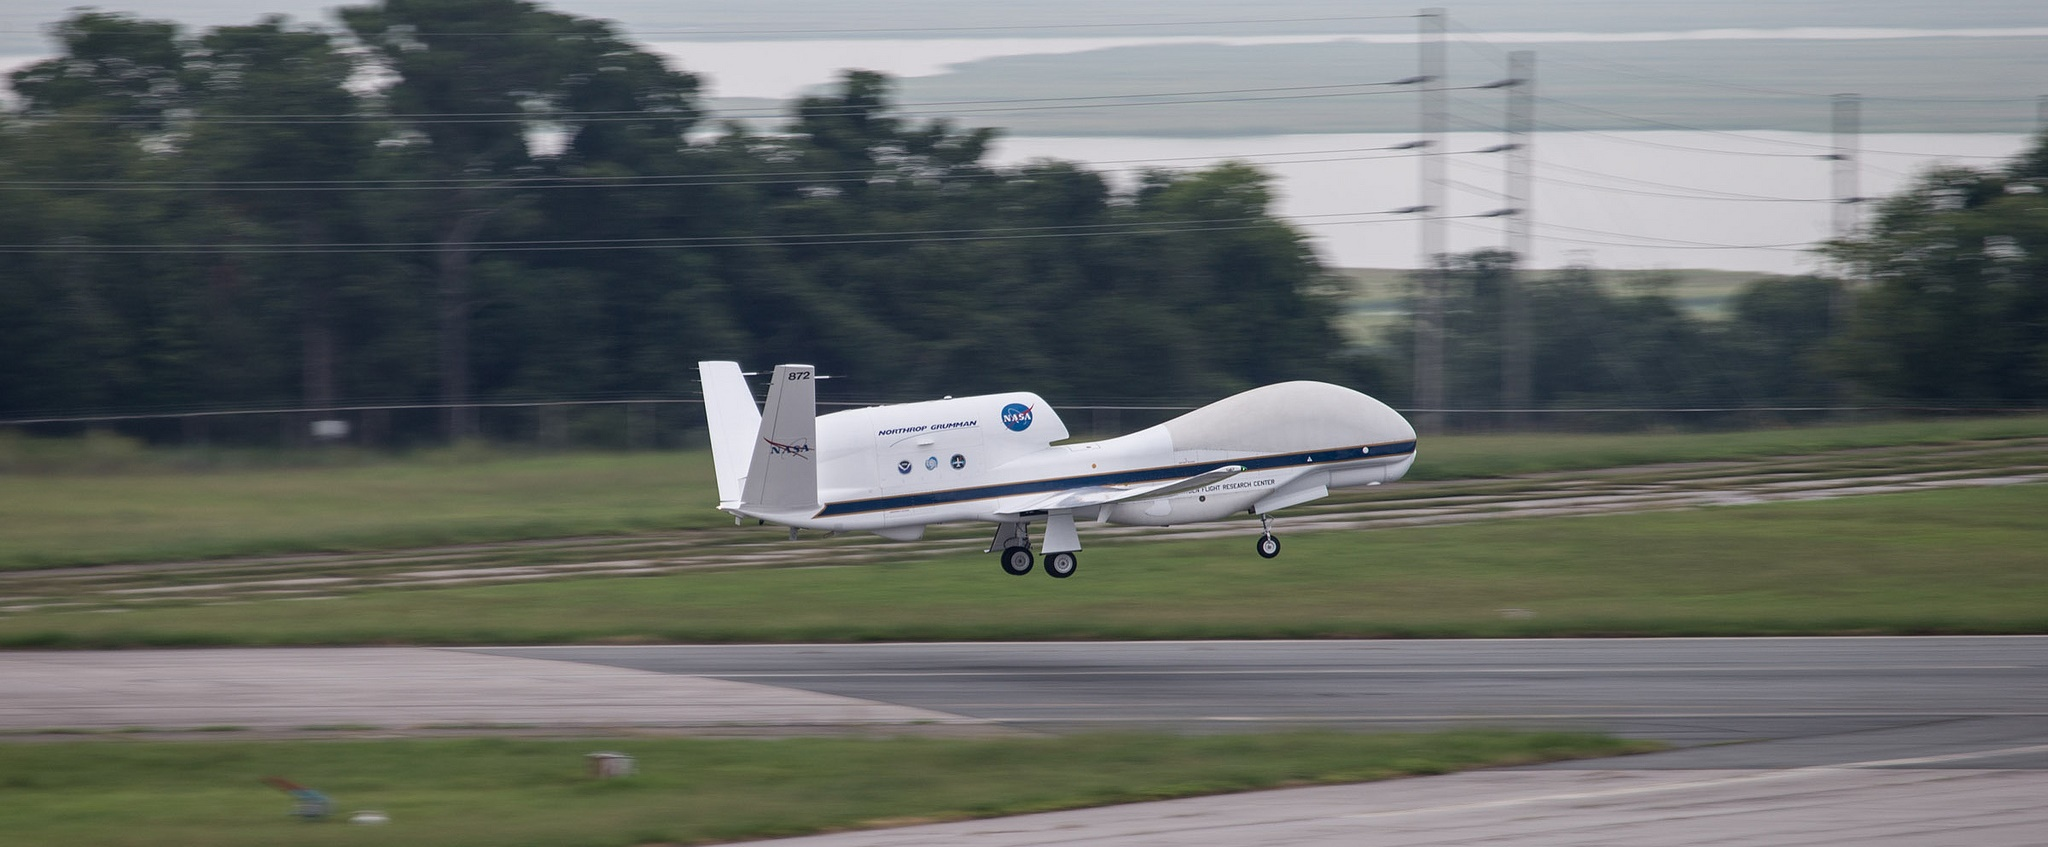 NASA's Global Hawk aircraft will carry multiple instruments to profile hurricanes during the 2015 field season. (Image Credit:NOAA)